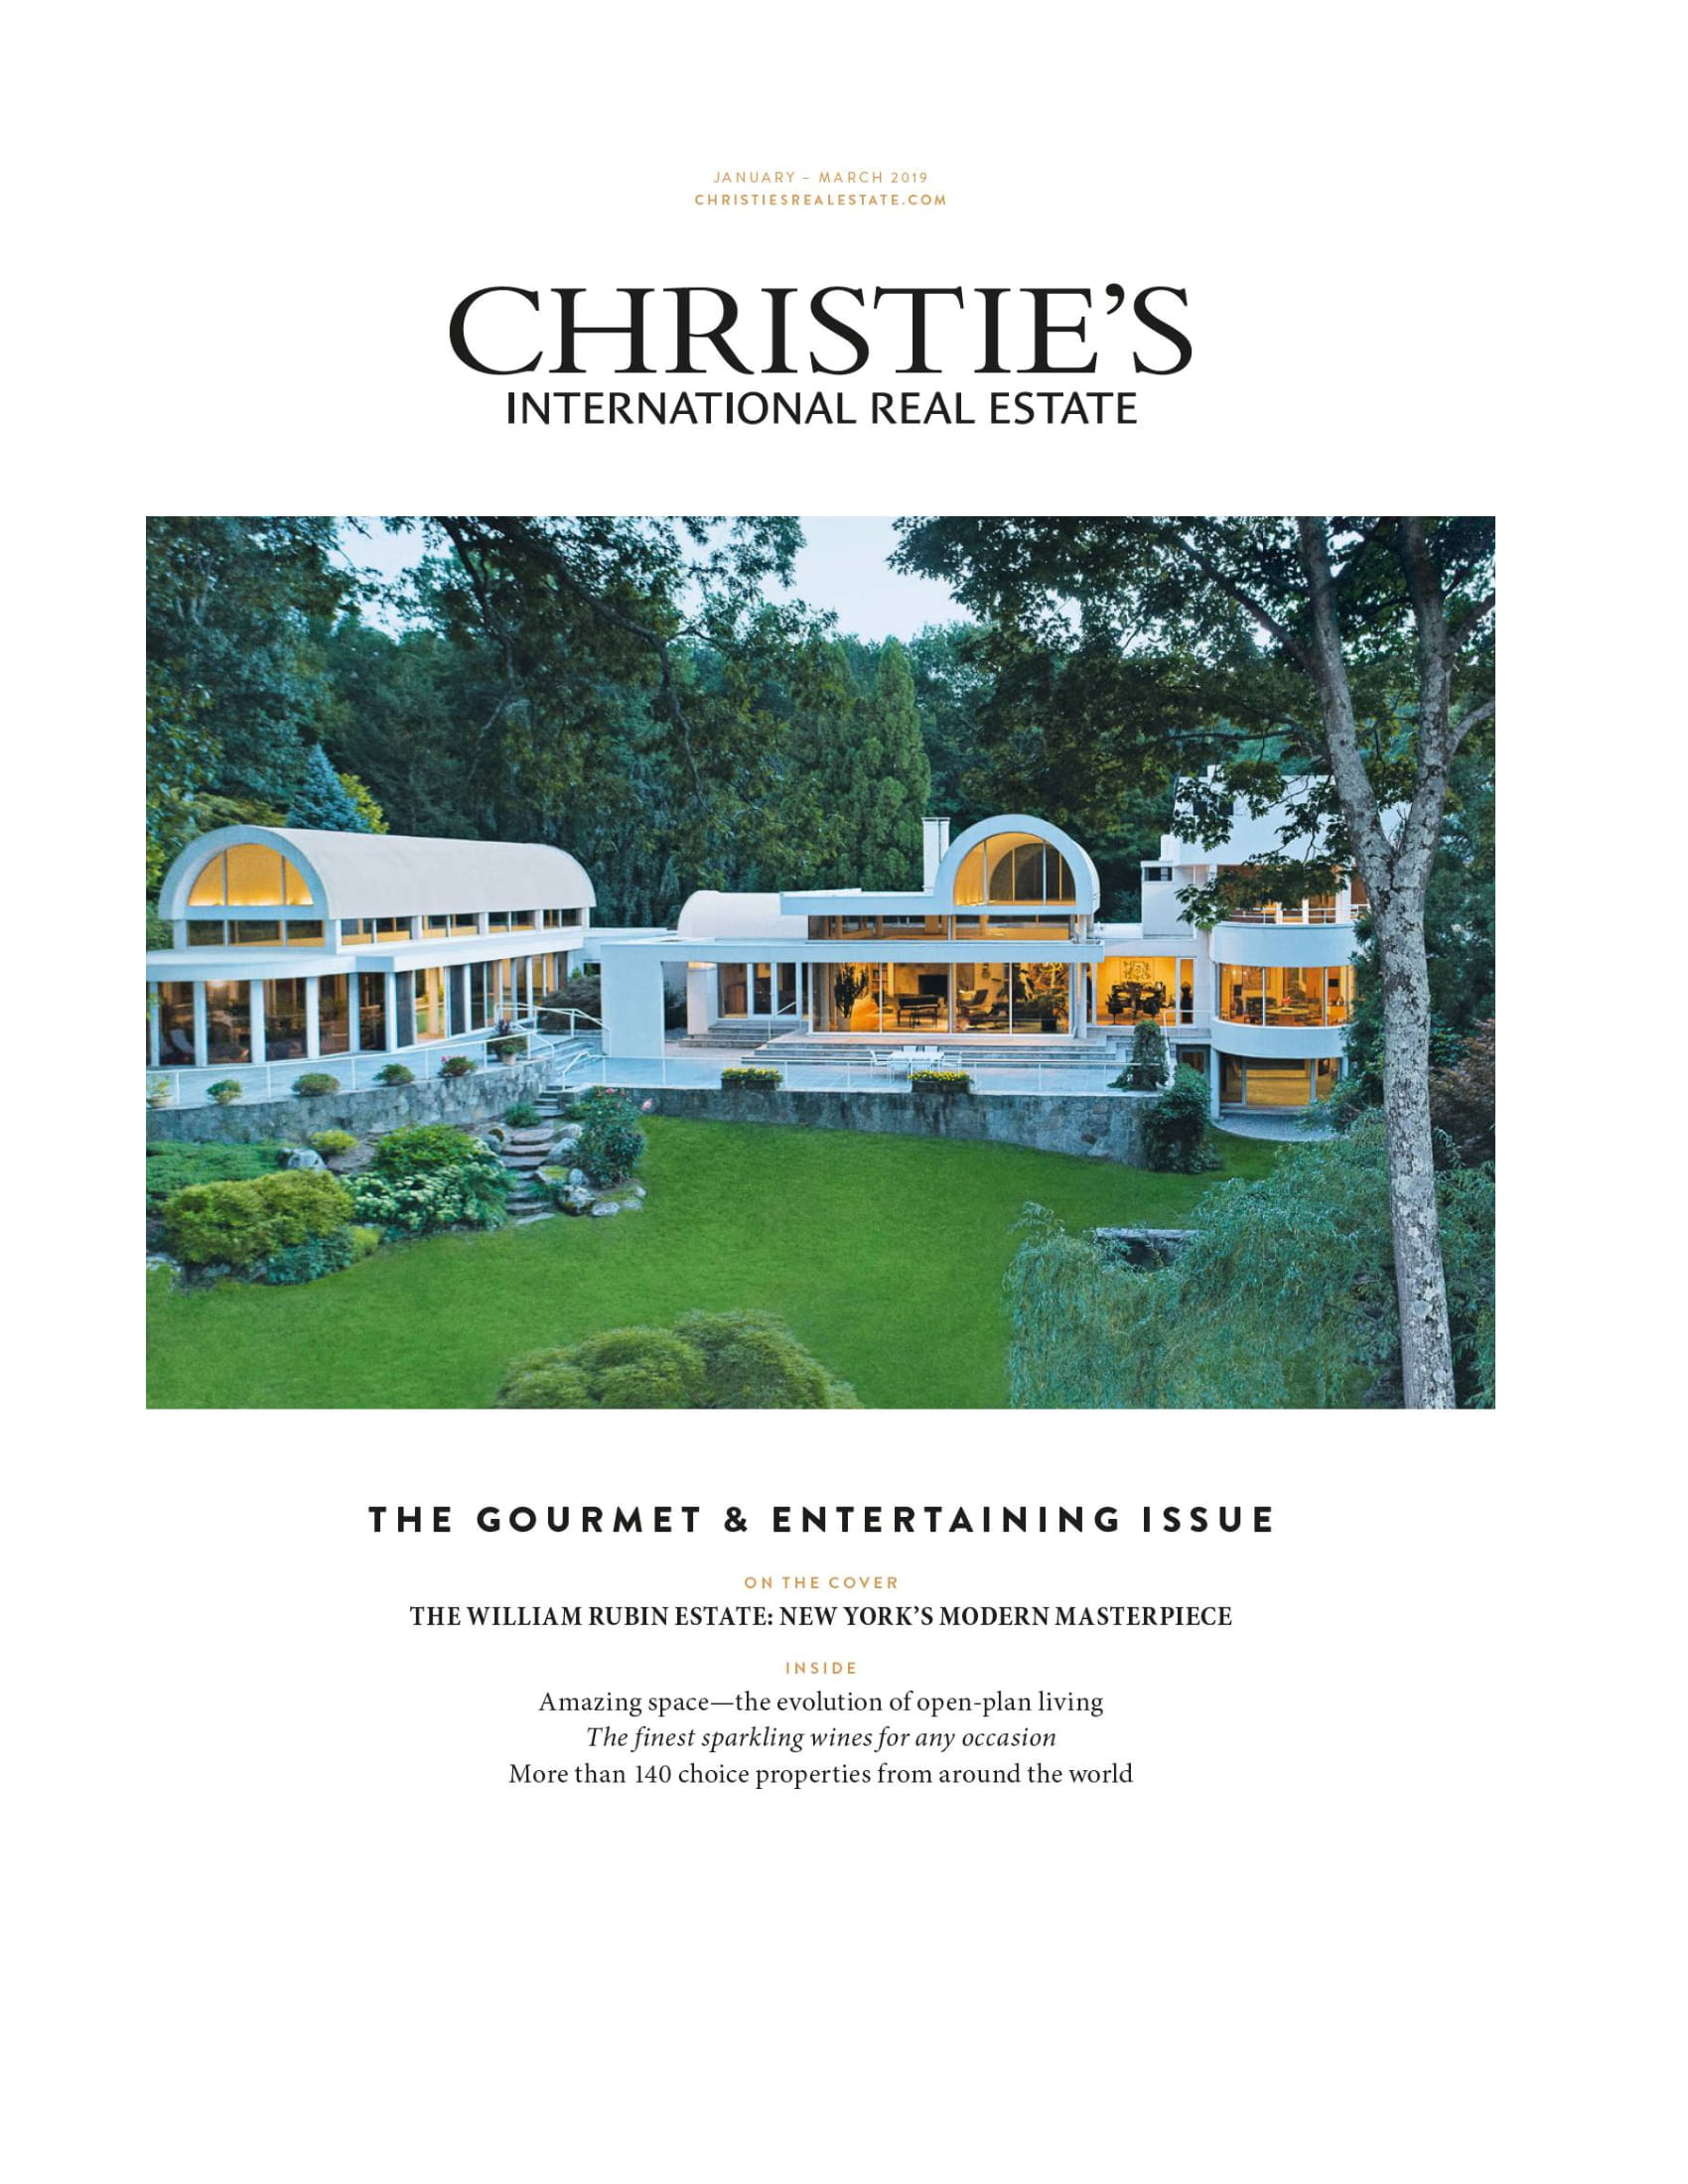 Christie's International Real Estate-Winer Issue 2018.jpg